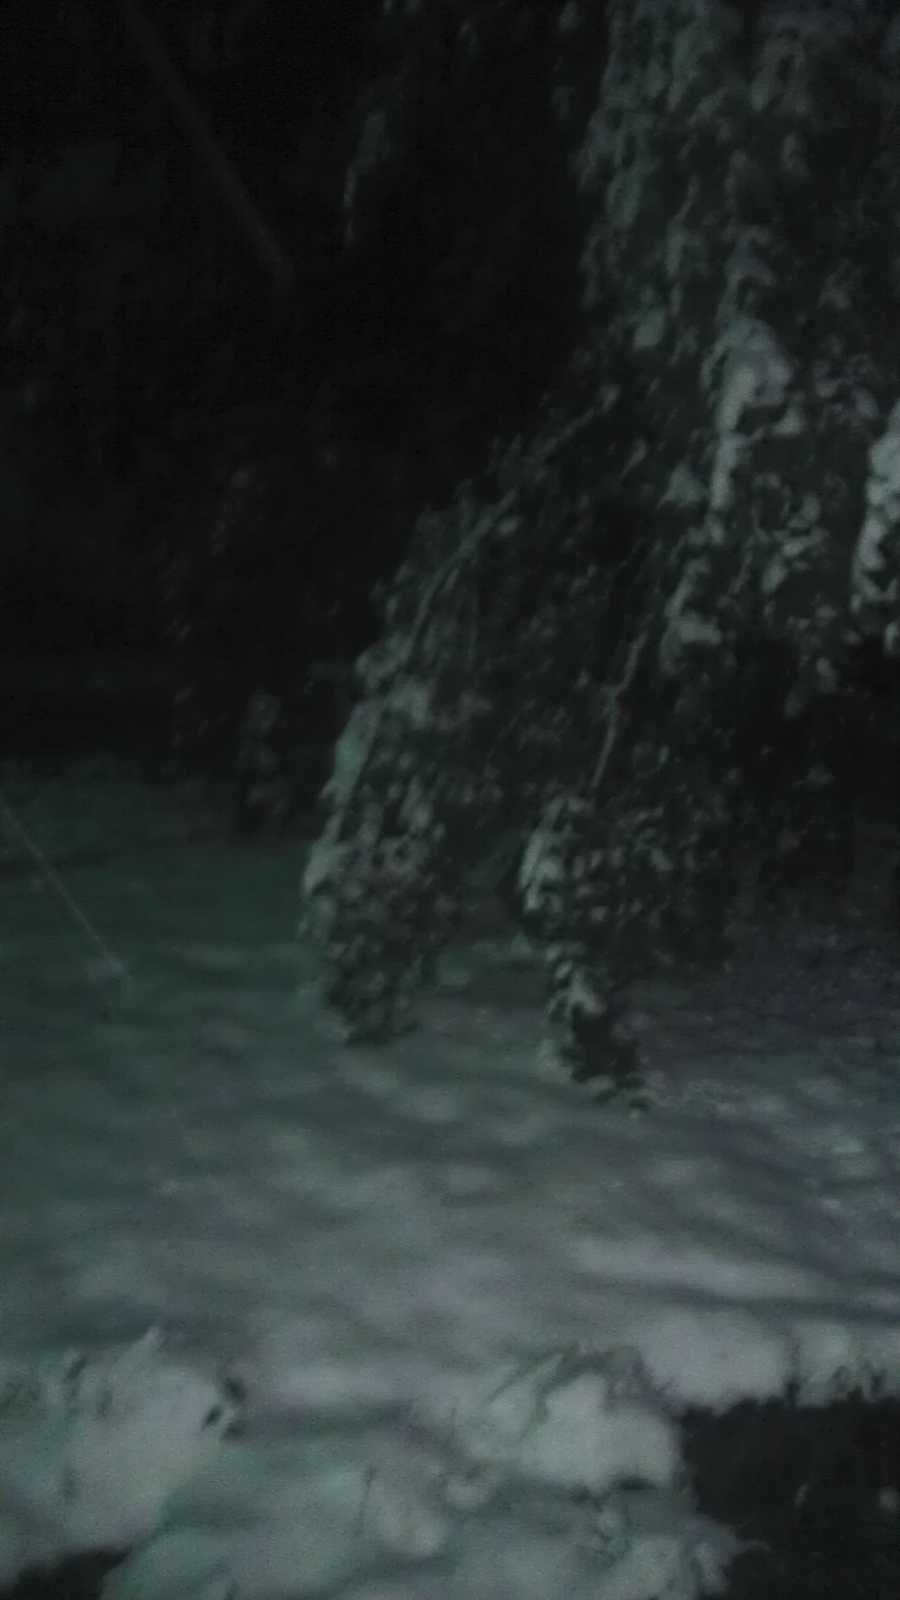 Snow weighing down the trees in Gentry.